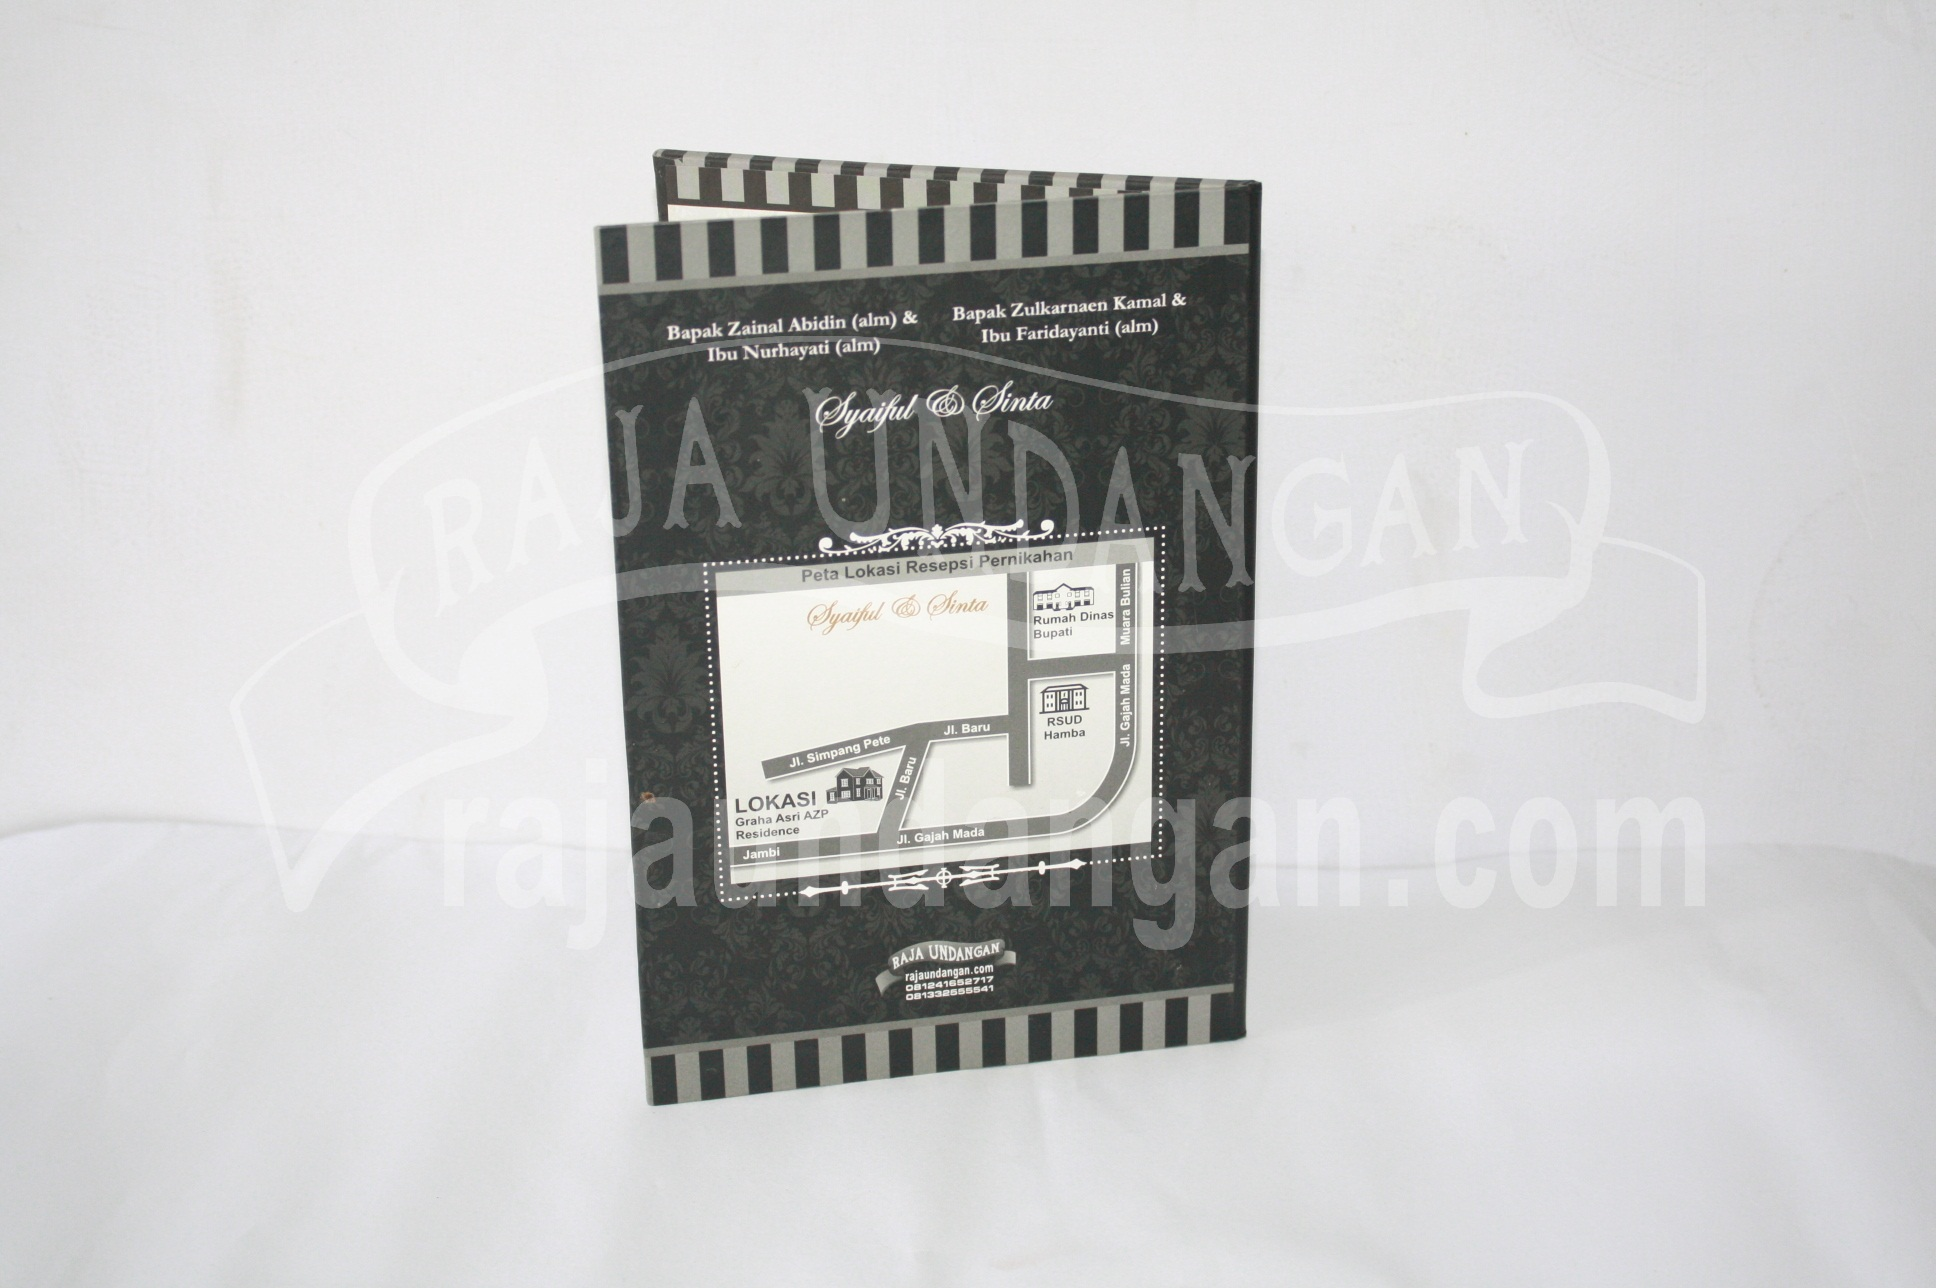 Undangan Pernikahan Mini Hardcover Syaiful dan Sinta EDC 35 2 - Pesan Wedding Invitations Simple di Ploso